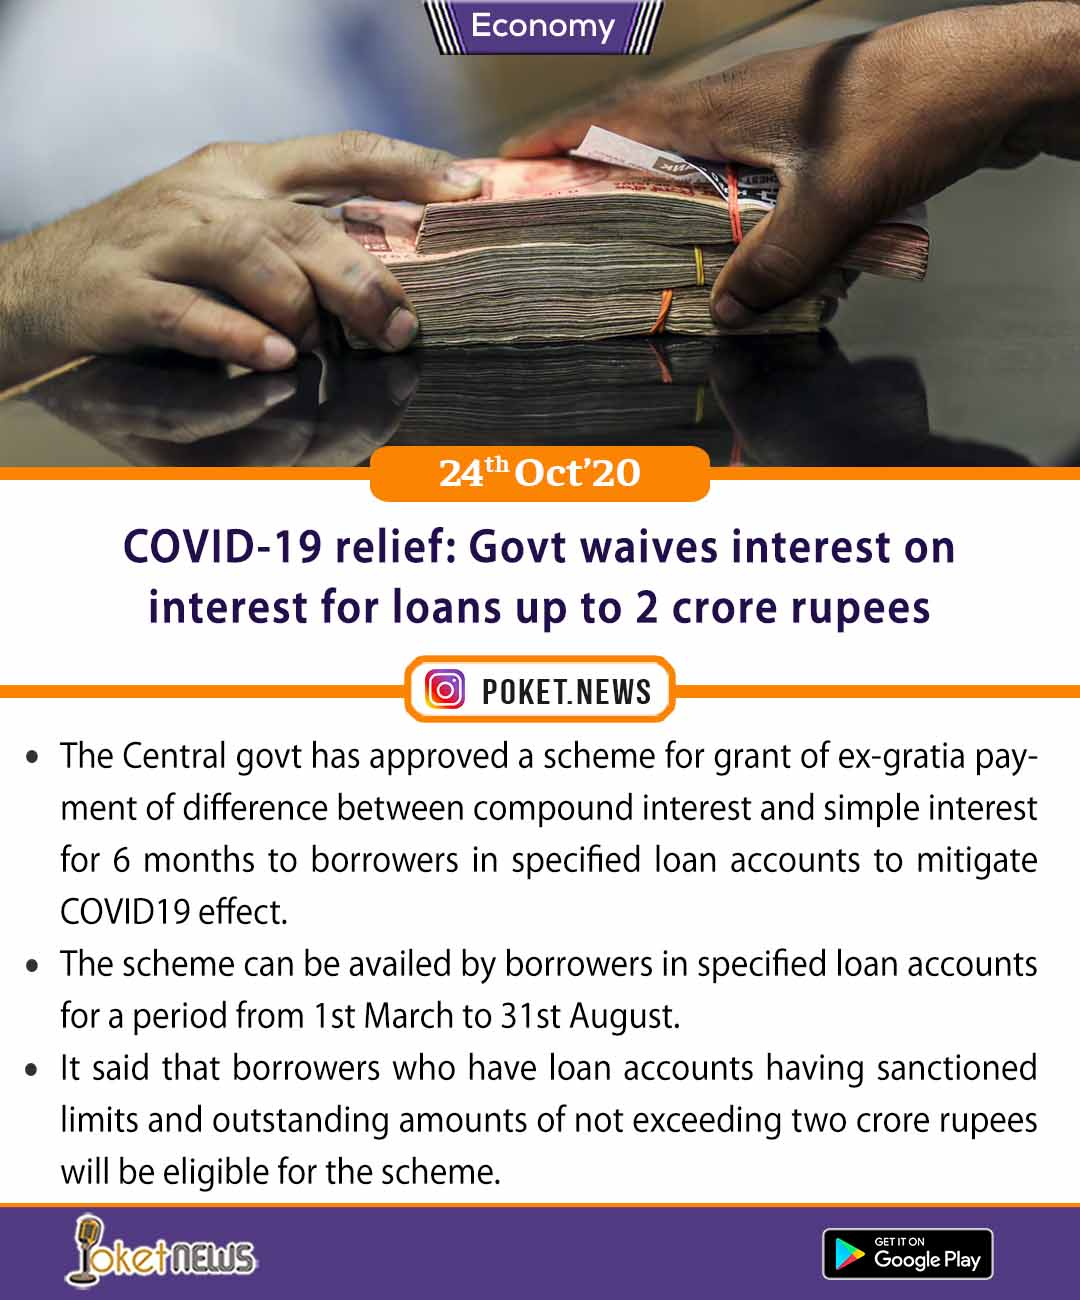 COVID-19 relief: Govt waives interest on interest for loans up to 2 crore rupees